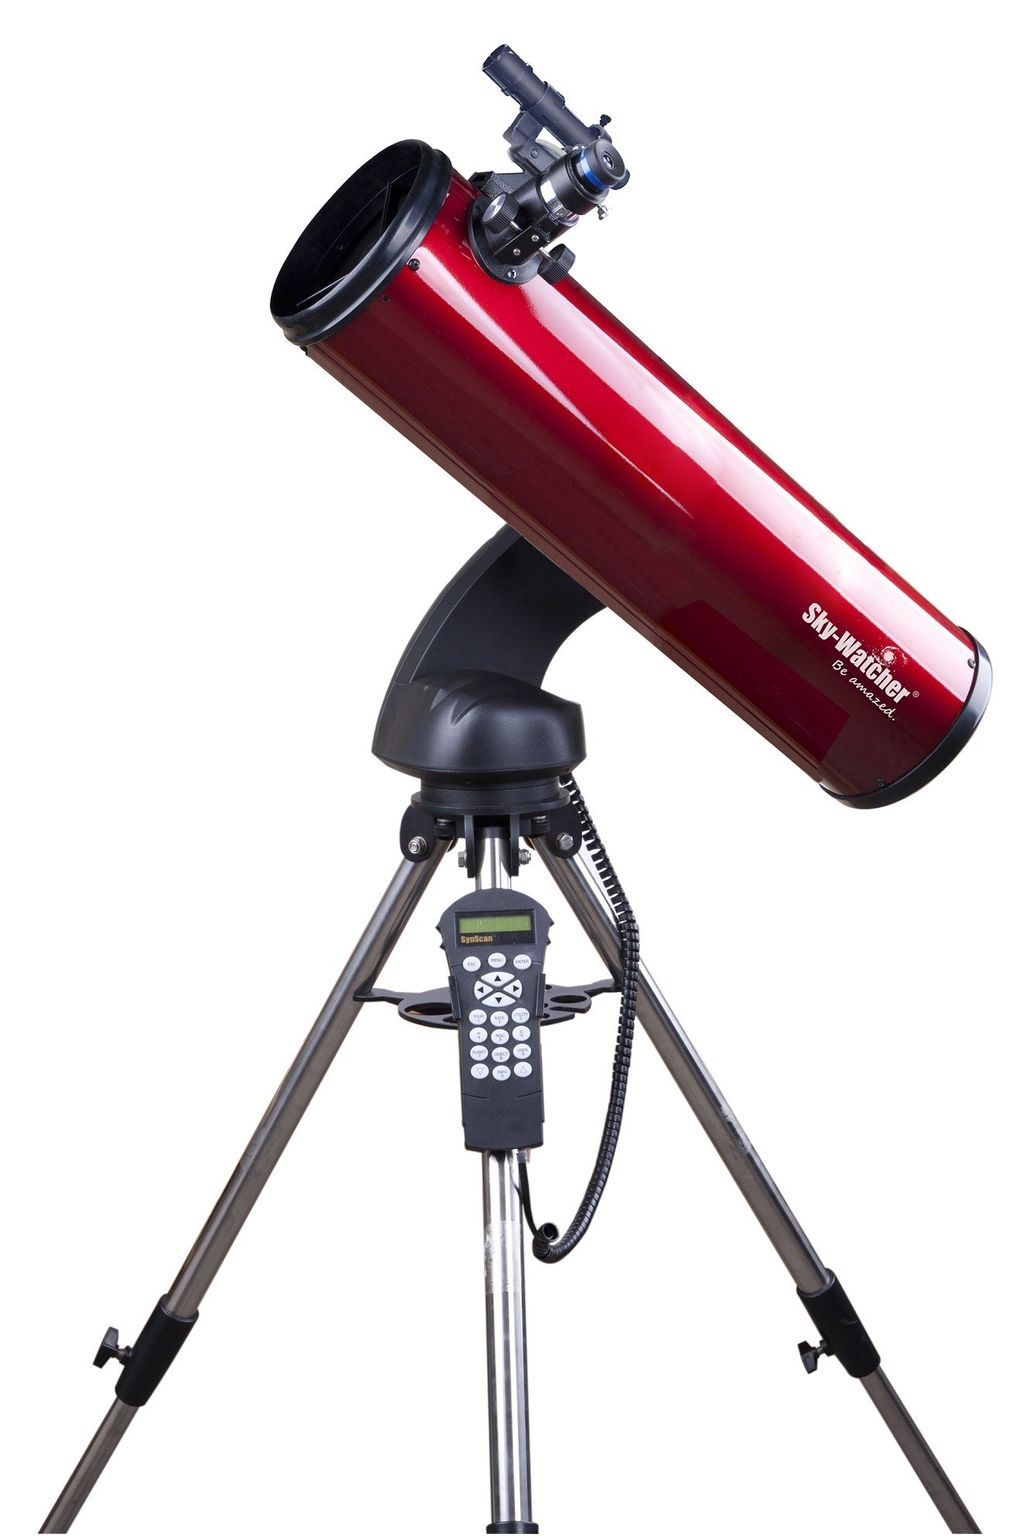 skywatcher-sw150nsd-star-discovery-150-750-photo-reflector-red-tube-telescope.jpg